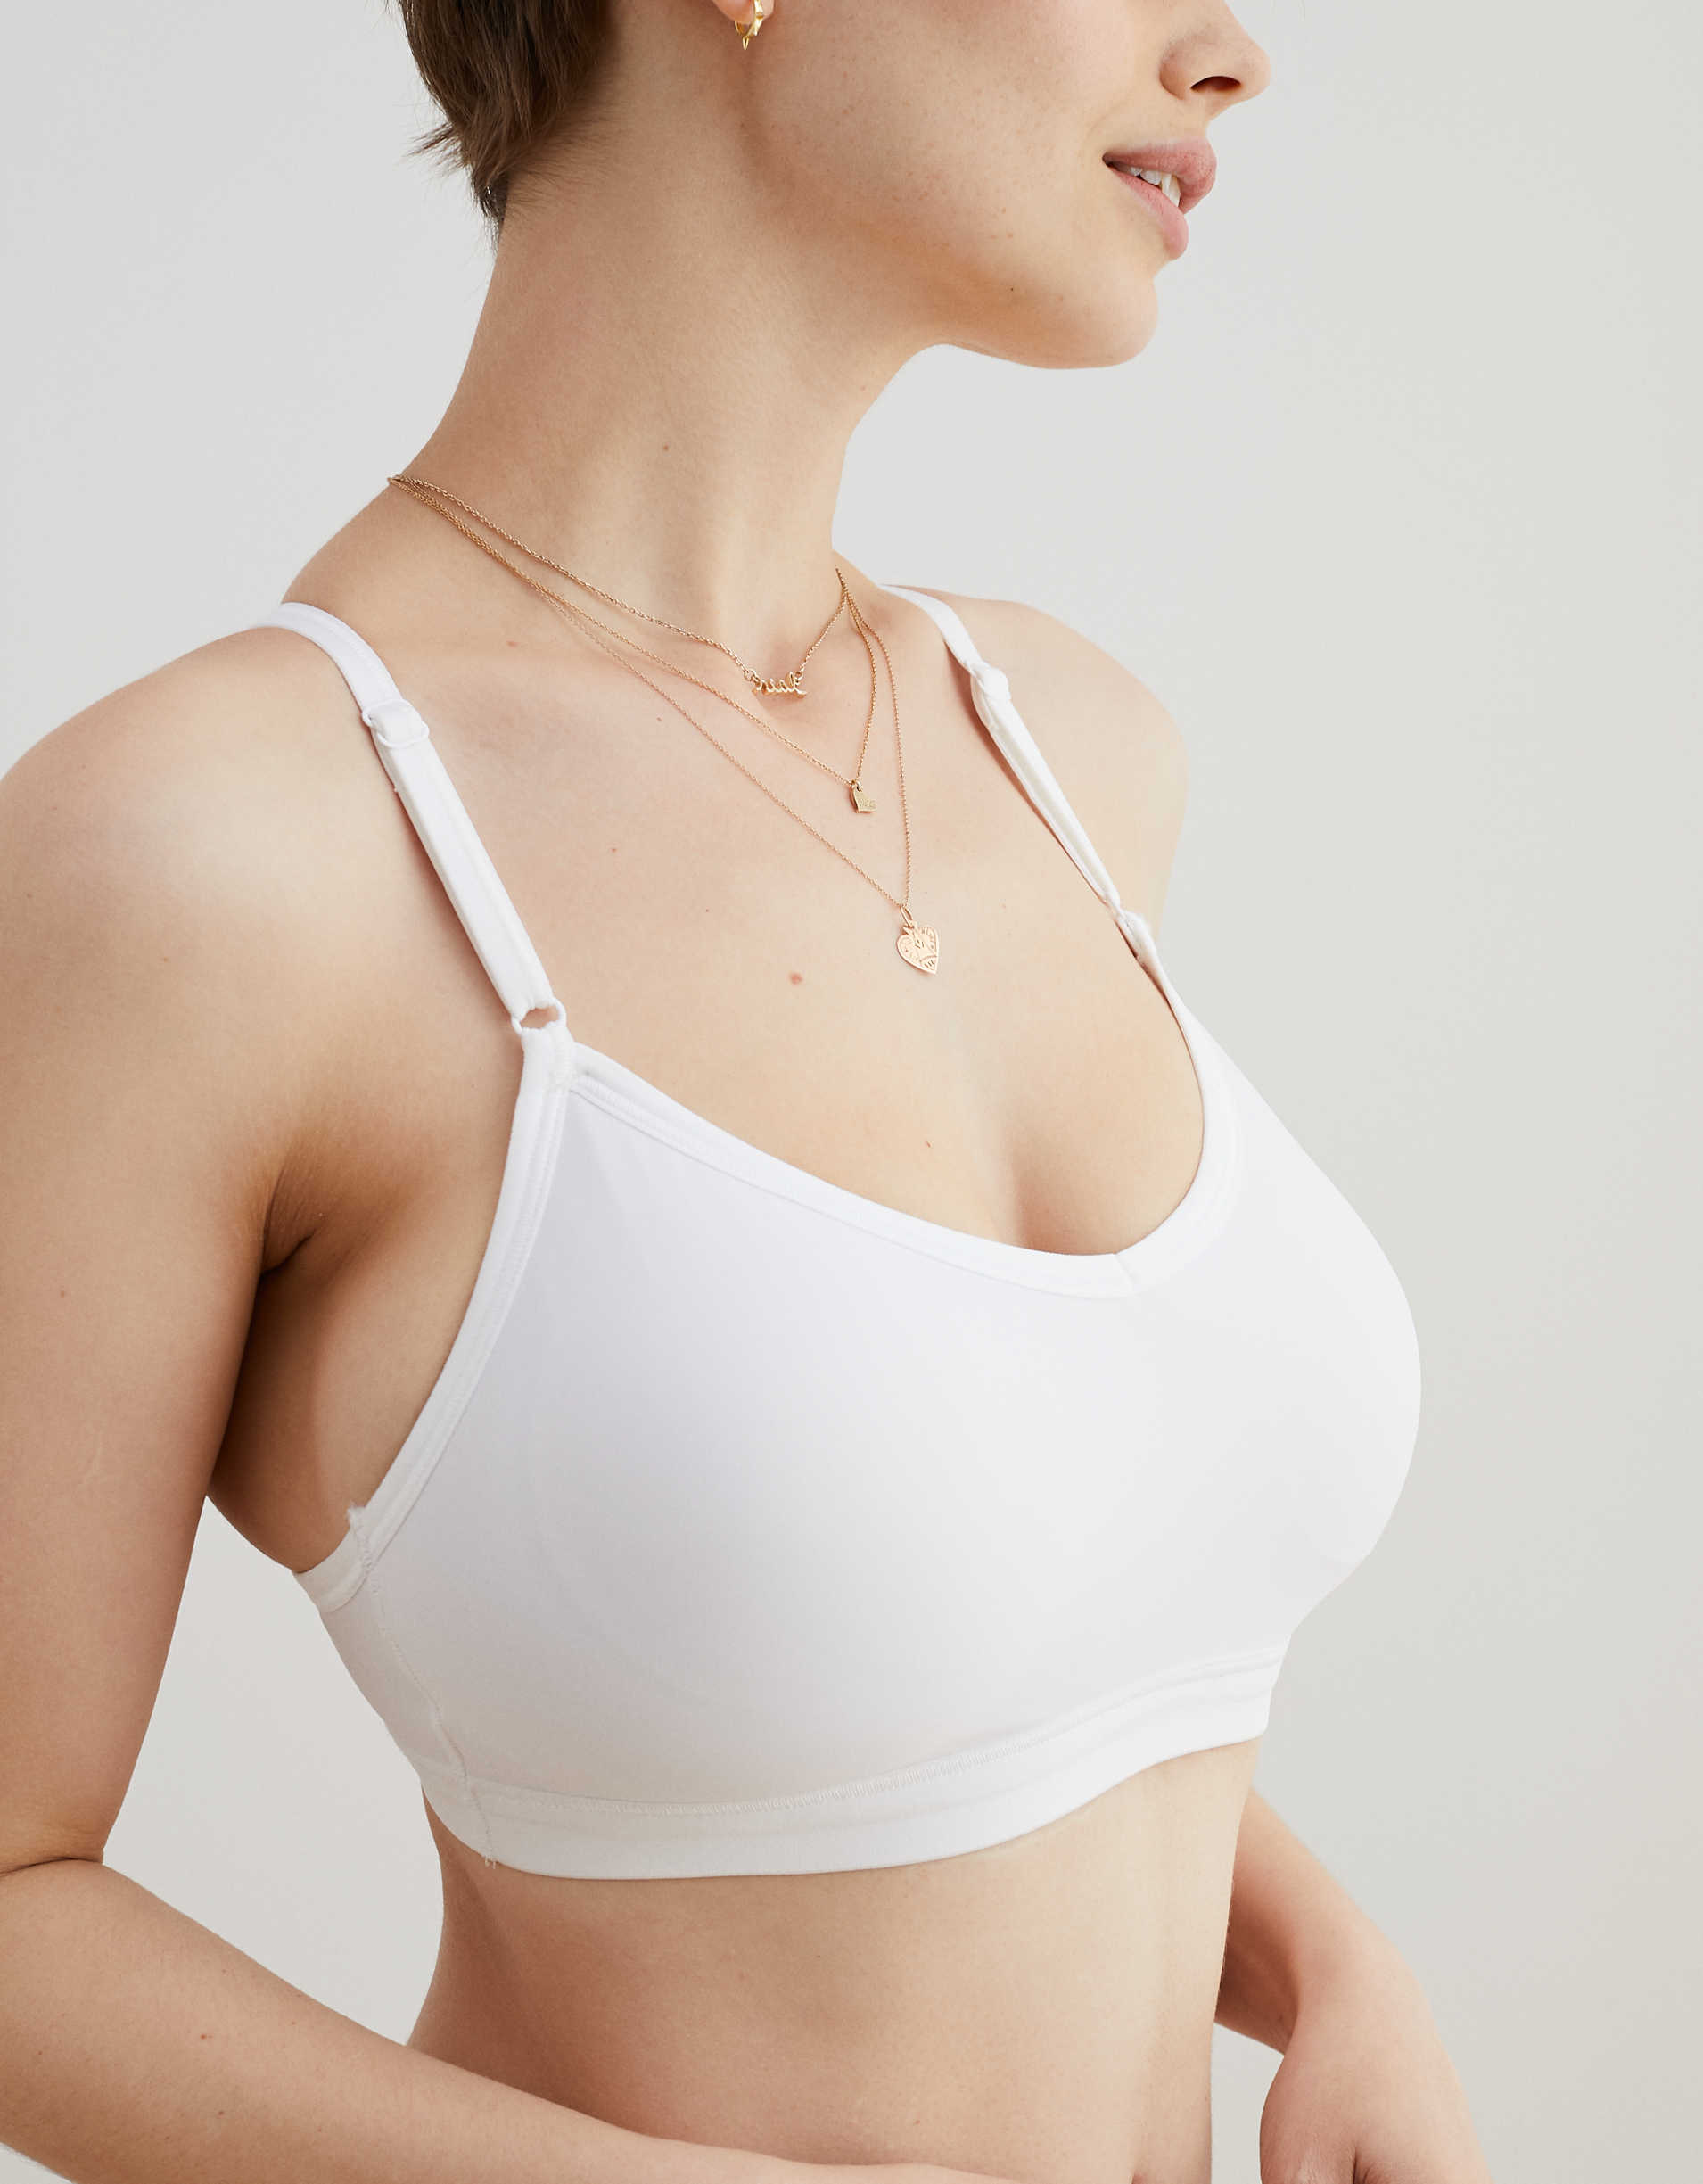 Aerie Play Padded Sports Bra